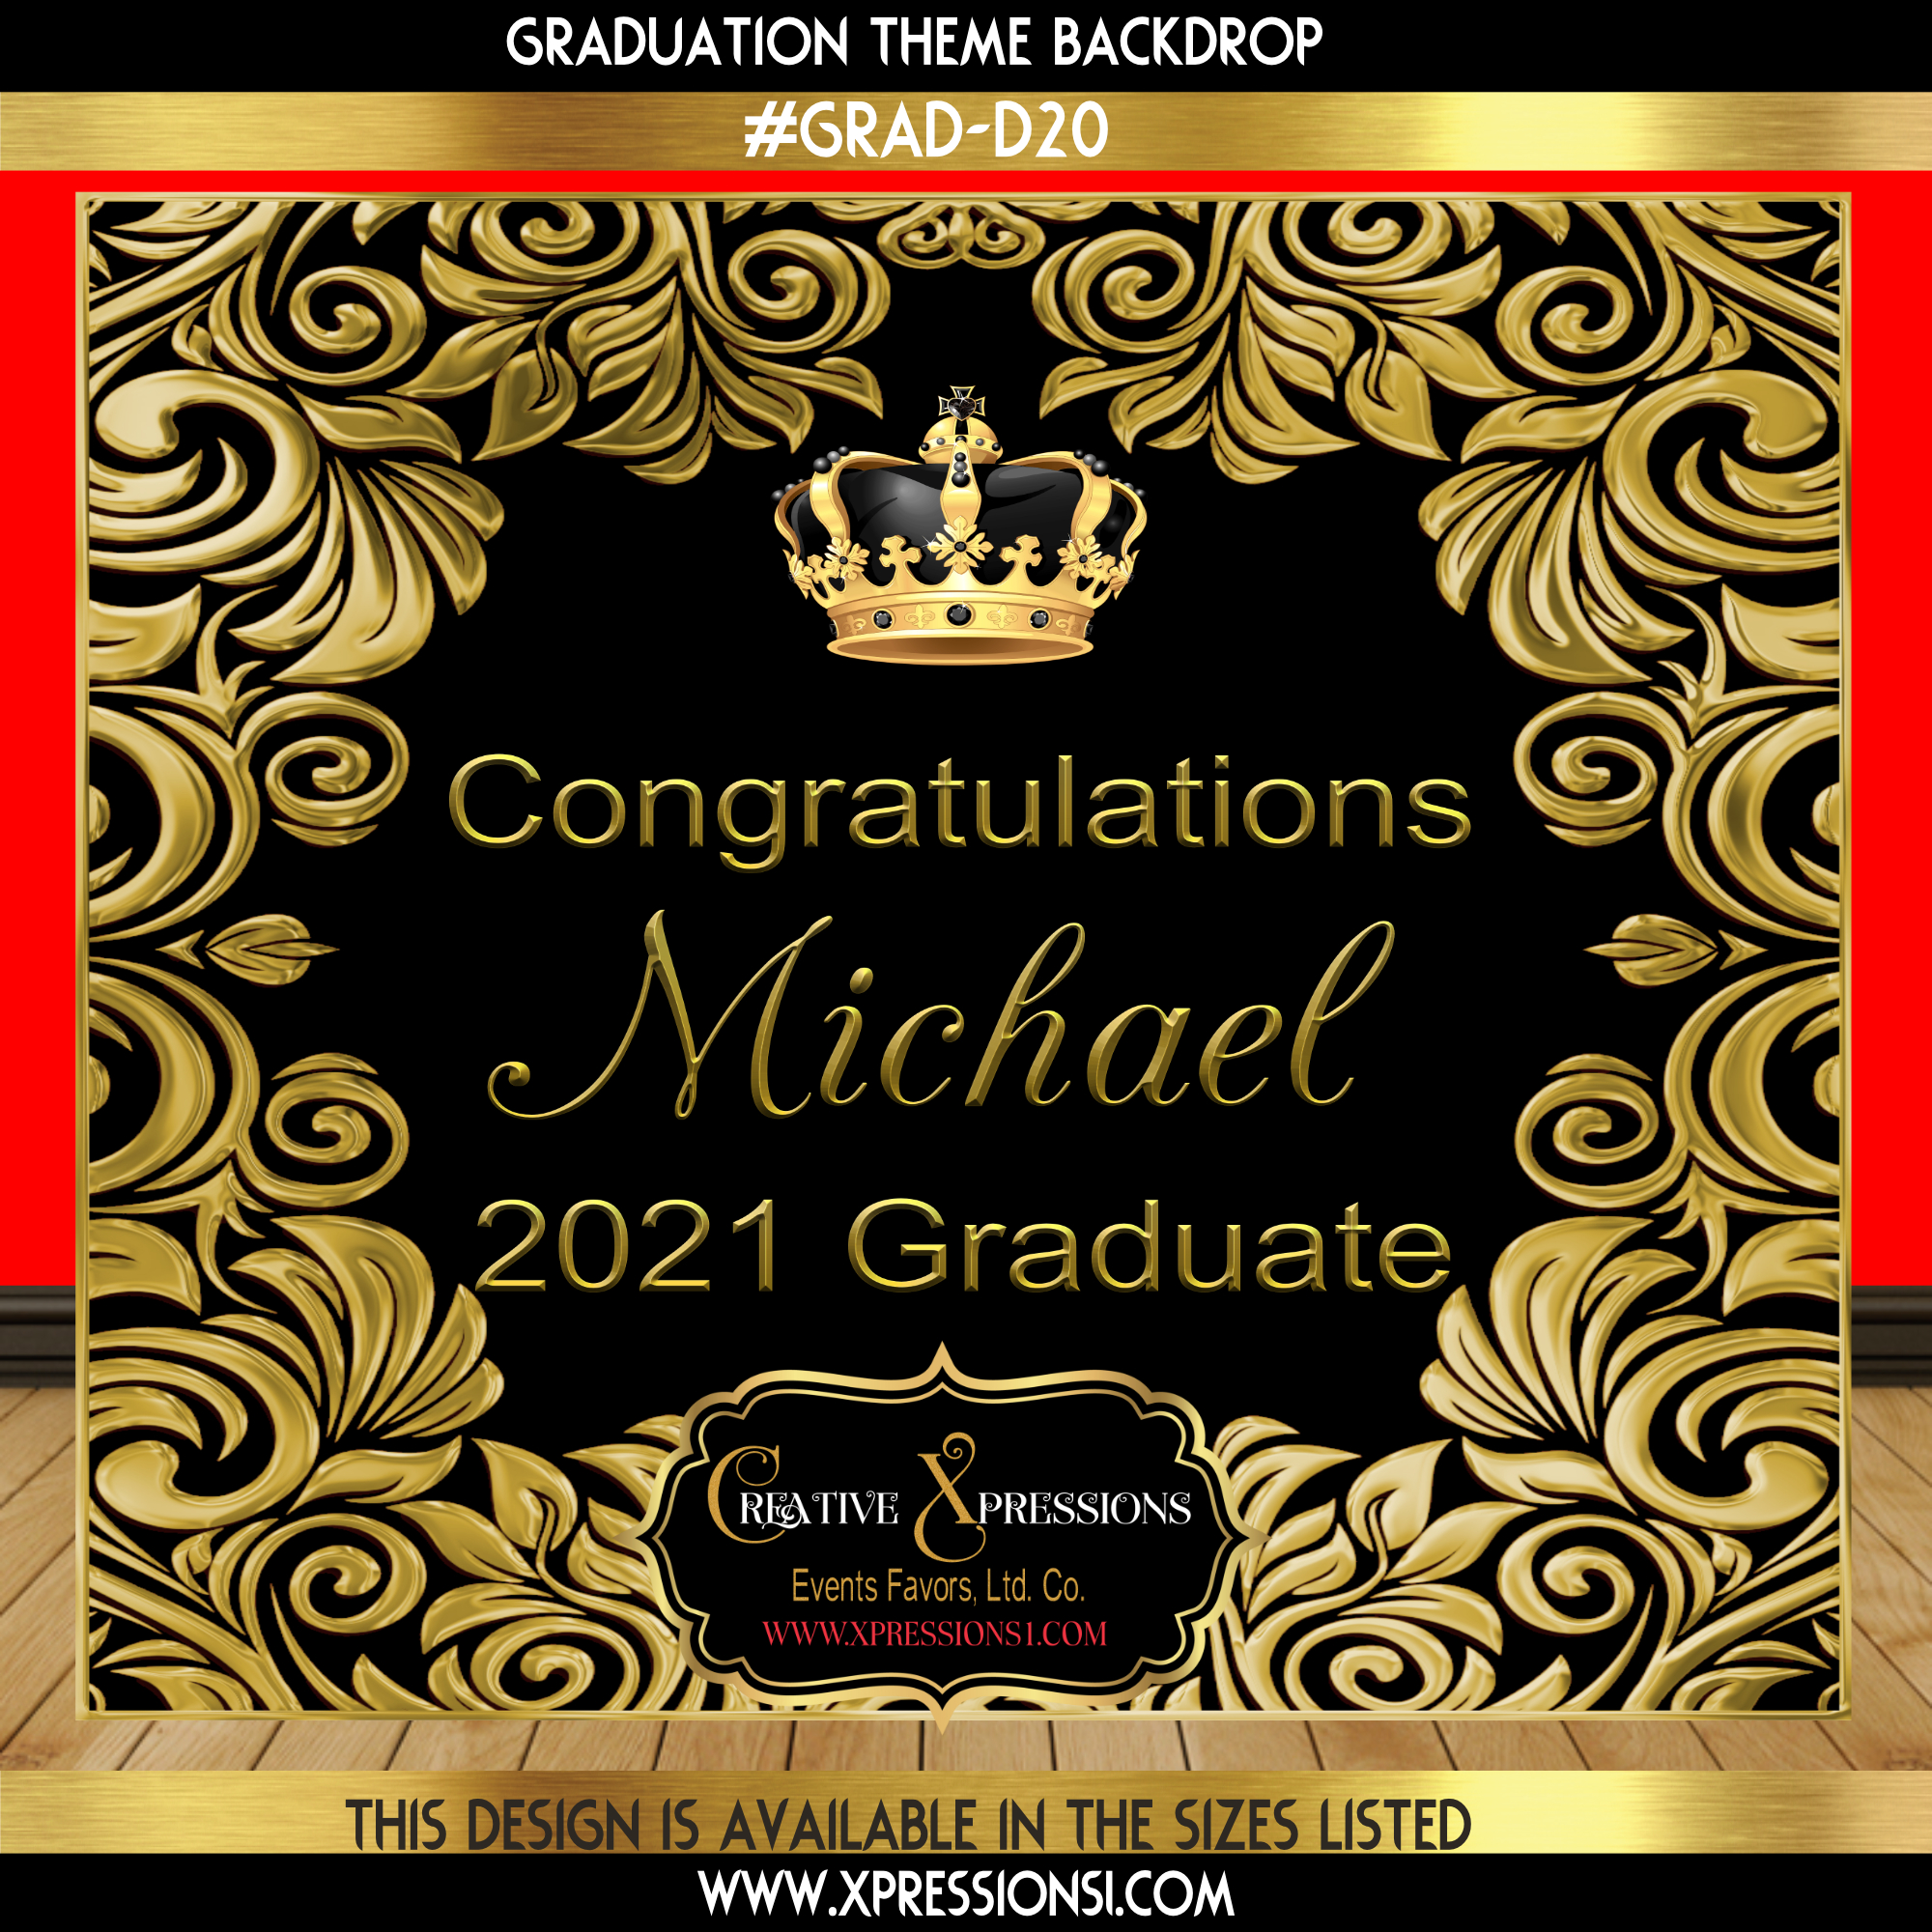 Ornate Gold Graduation Backdrop